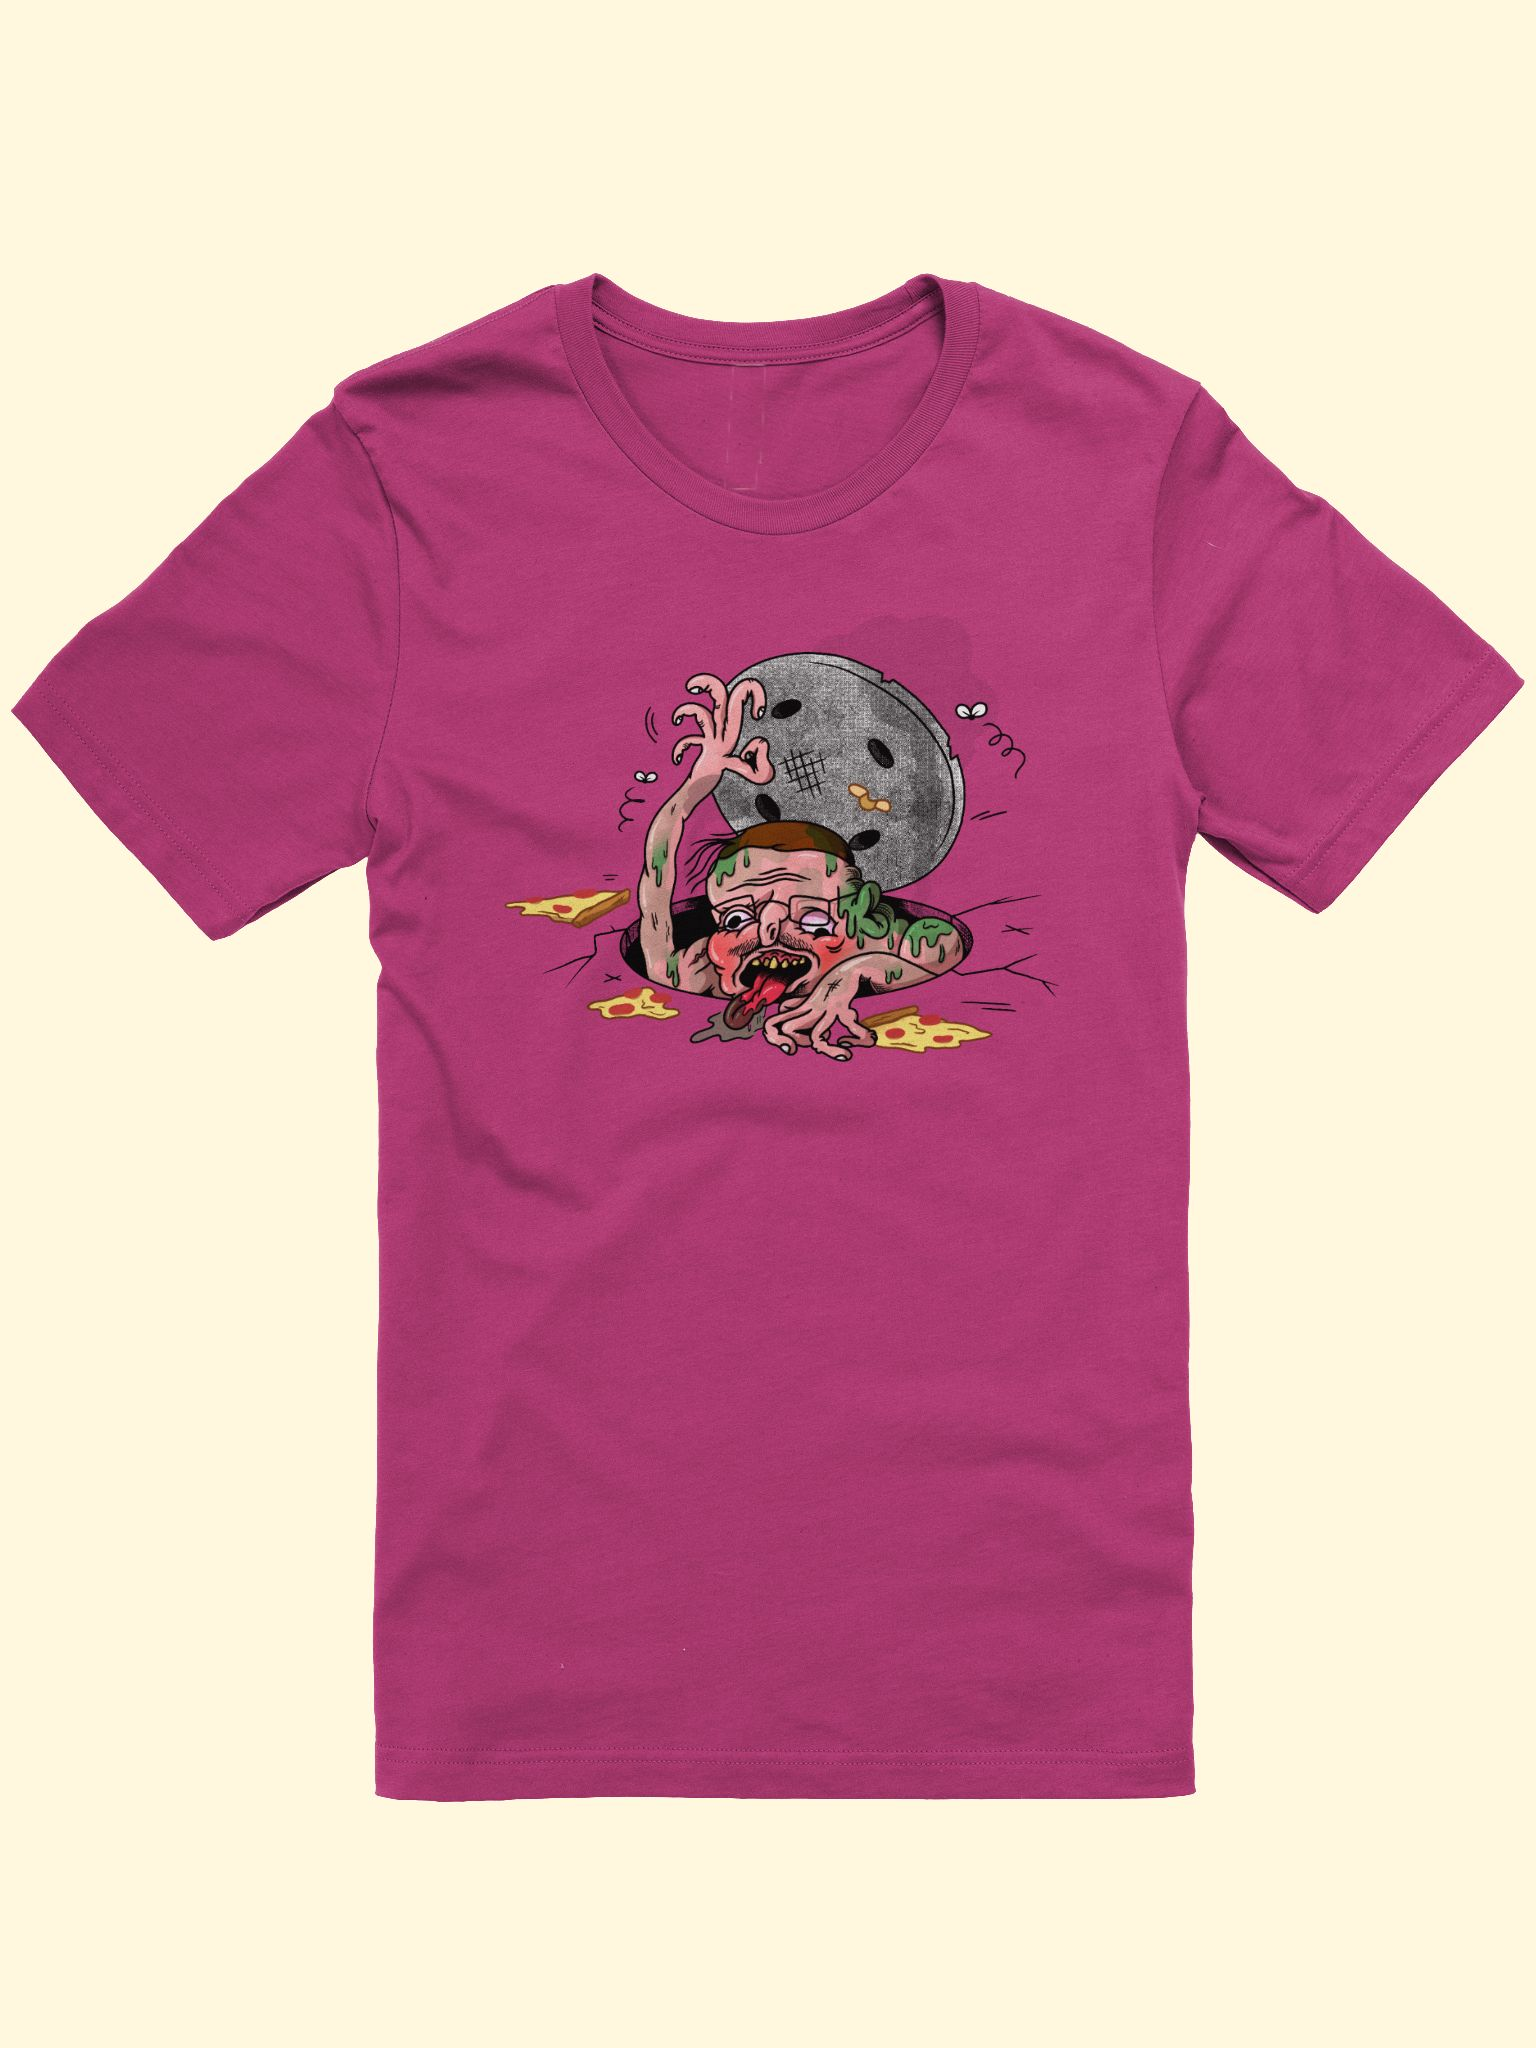 Sewer Ricky T-shirt product image (1)